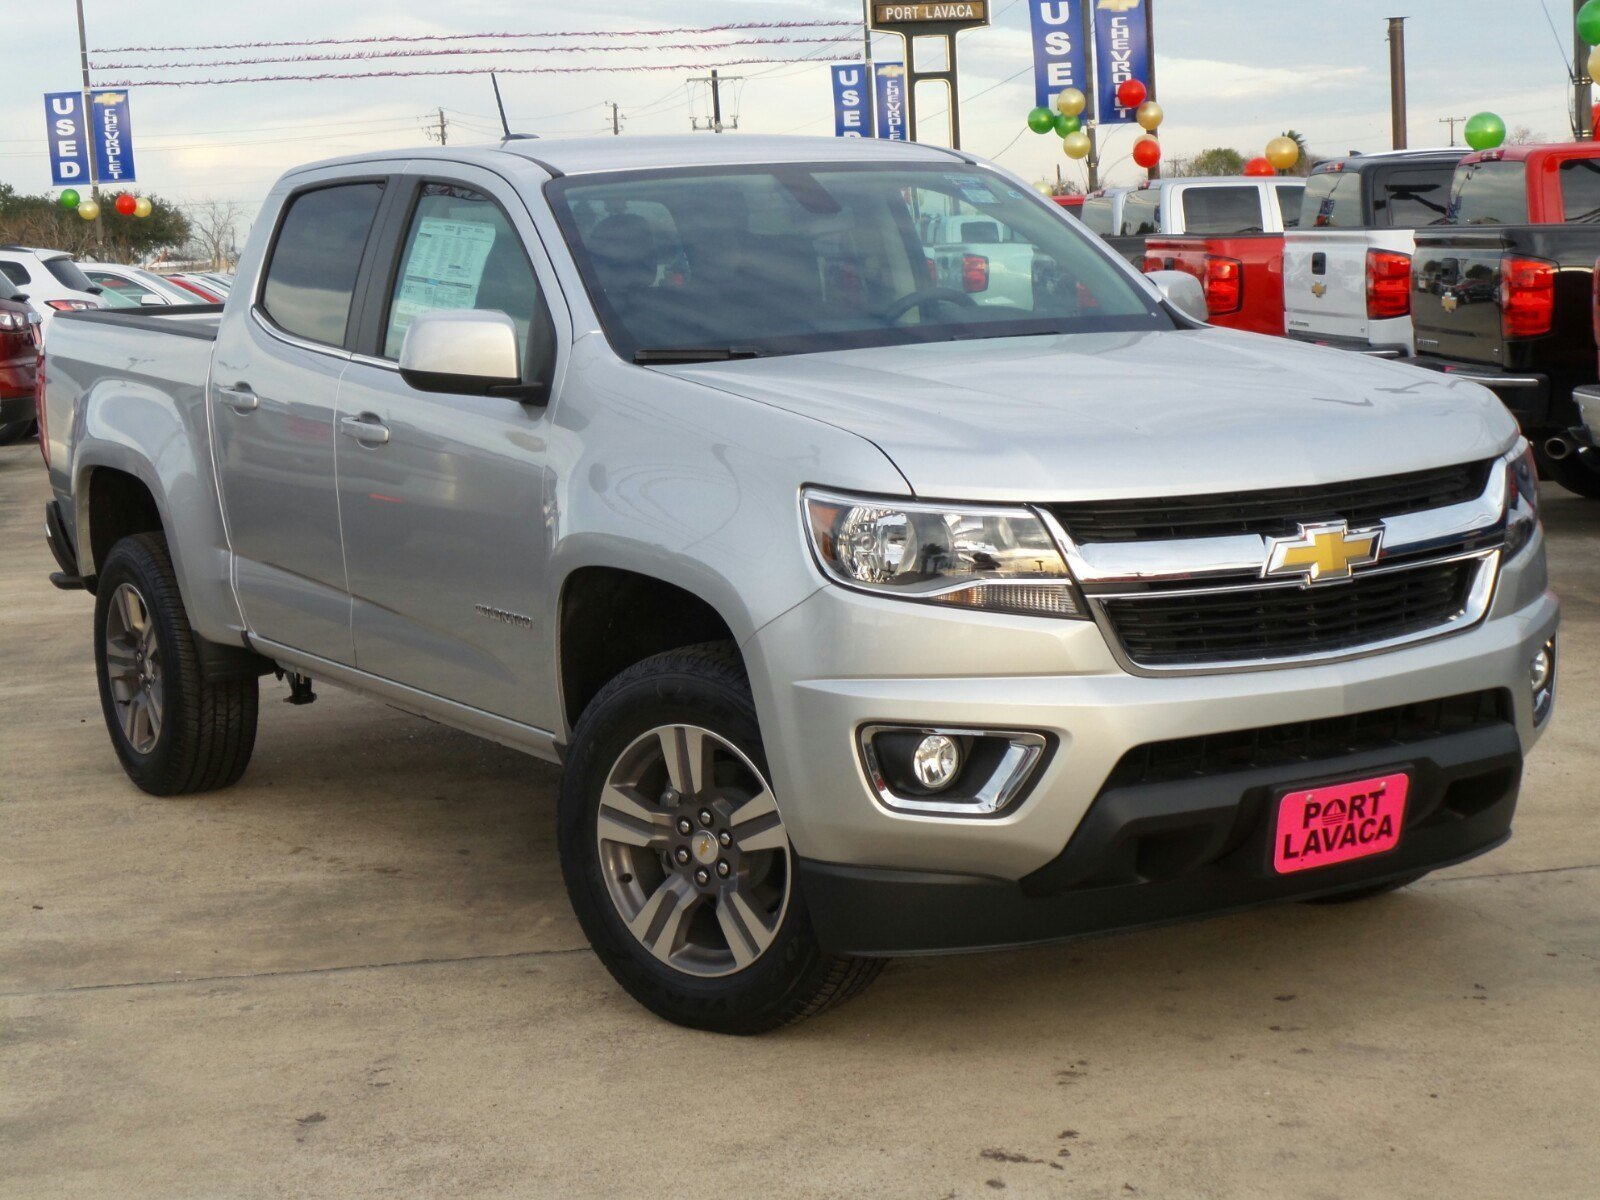 new 2017 chevrolet colorado 2wd lt crew cab pickup in port lavaca 1145693 port lavaca. Black Bedroom Furniture Sets. Home Design Ideas